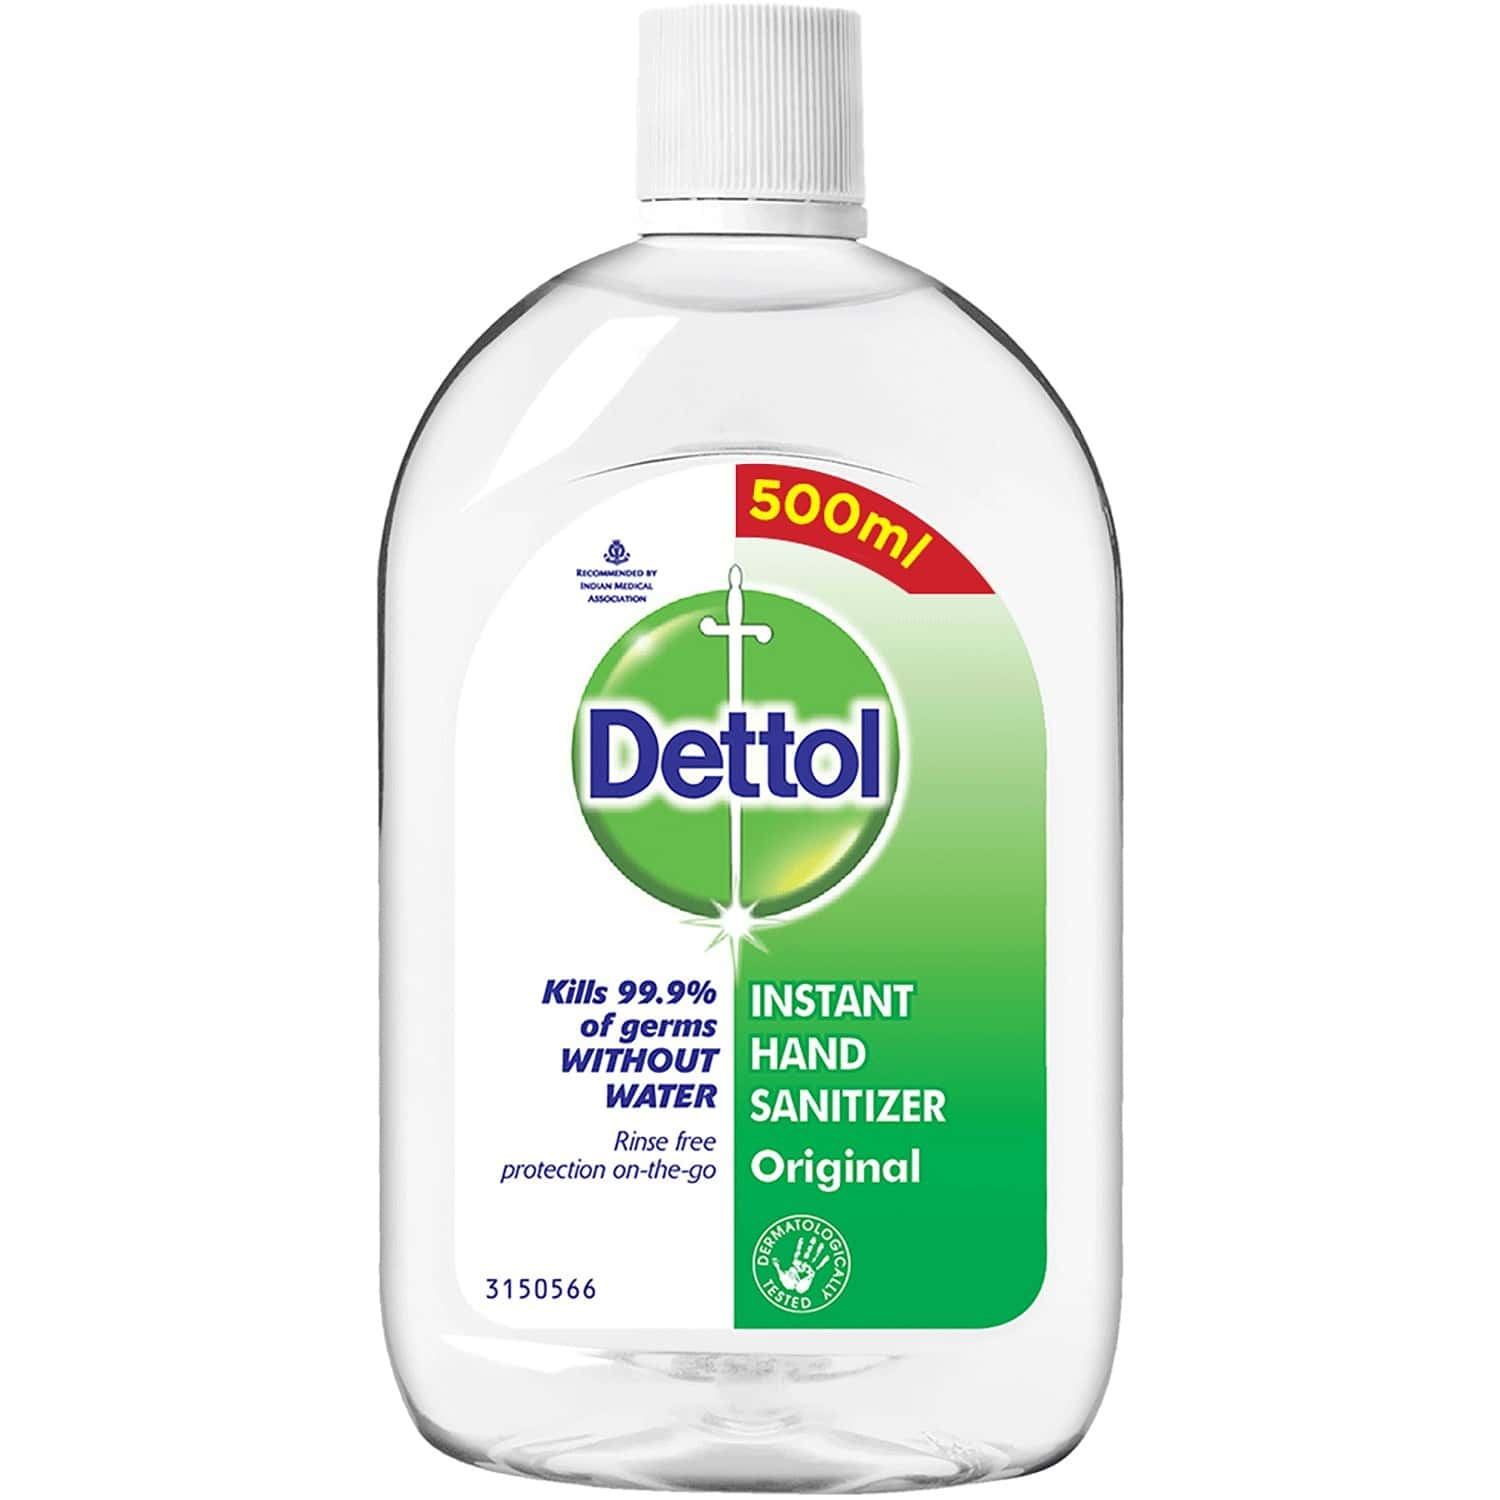 Dettol Clinical Strength Antiseptic Hand Sanitizer - 500ml